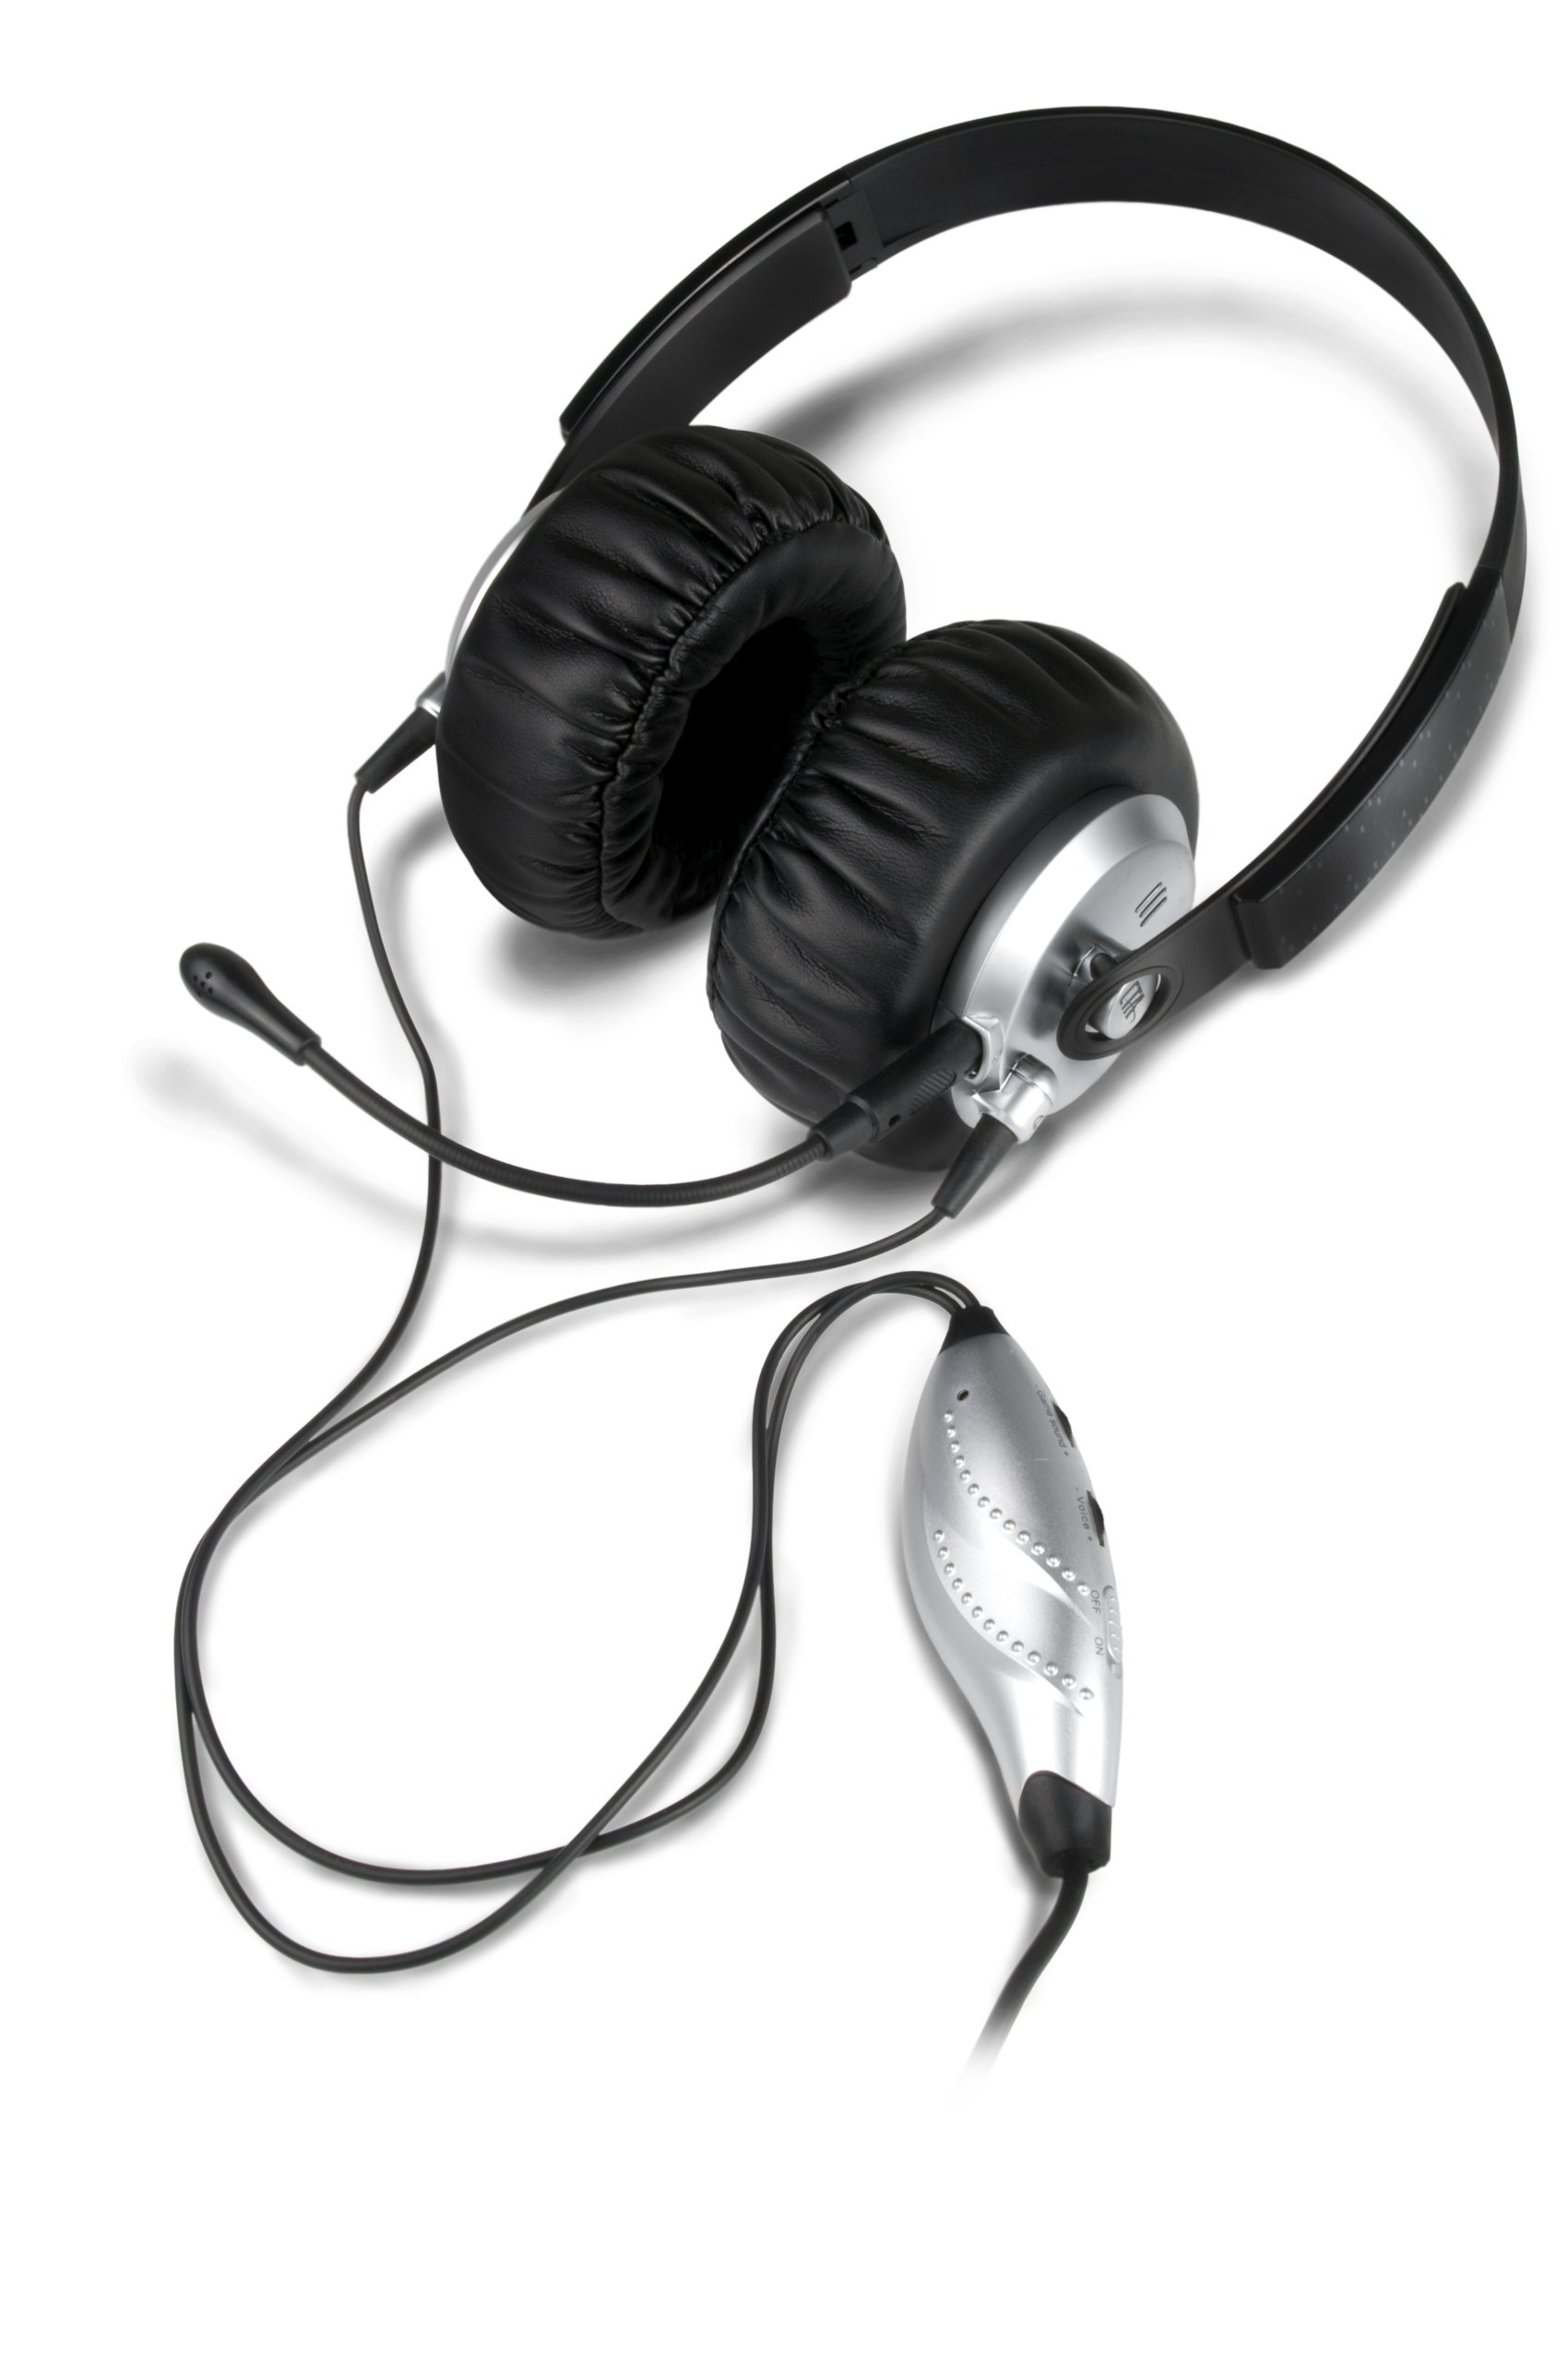 PS3 Gaming Headset for Adjustable Game Audio and Voice Chat by CTA Digital